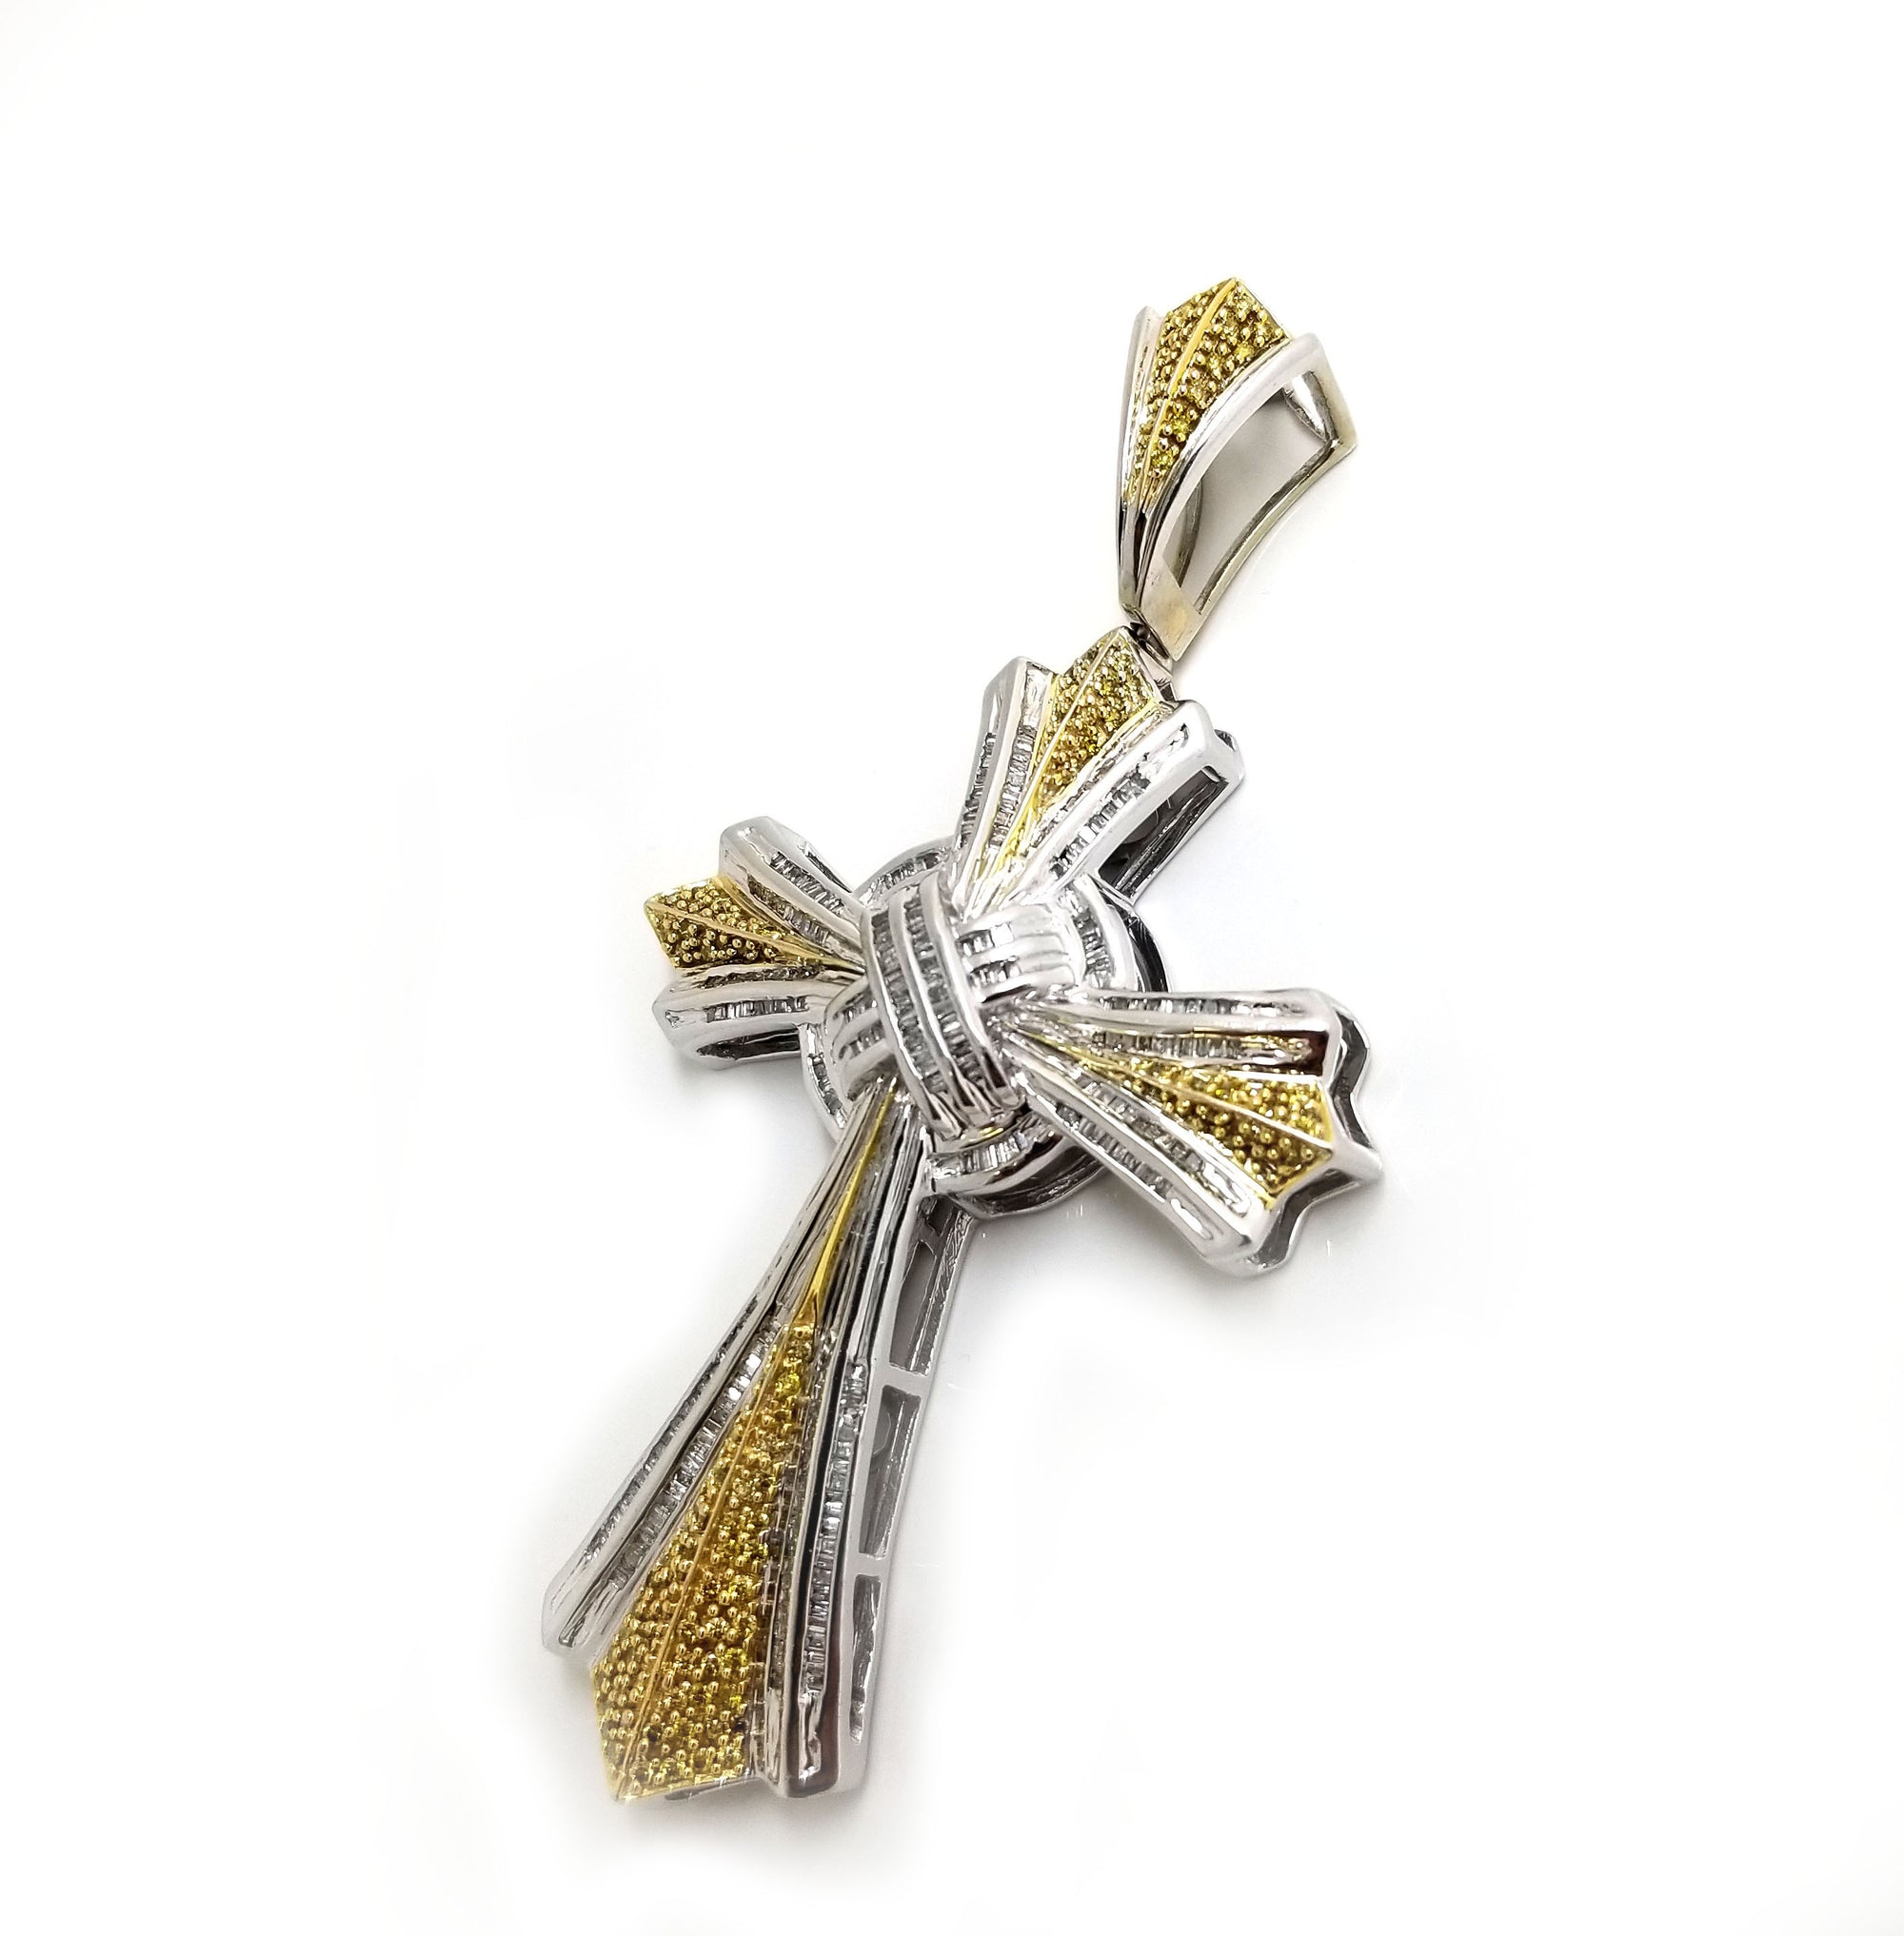 Real 10k White Gold with 3.5 ct Yellow & White Baguette Diamond Cross Pendant